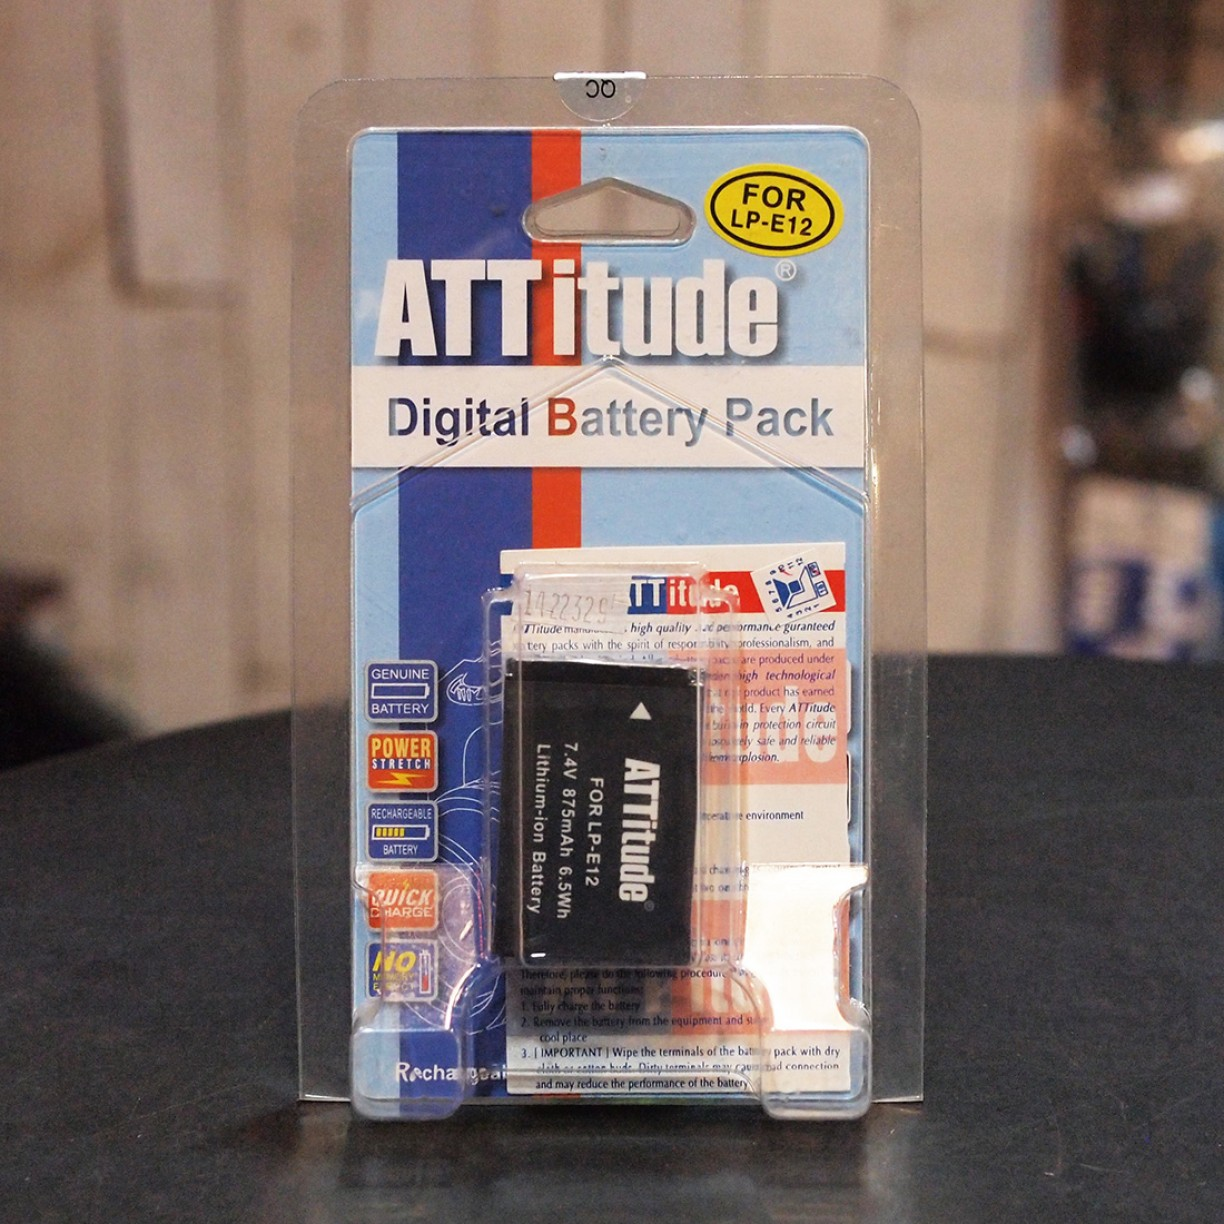 ATTITUDE BATTERY FOR CANON LP-E12